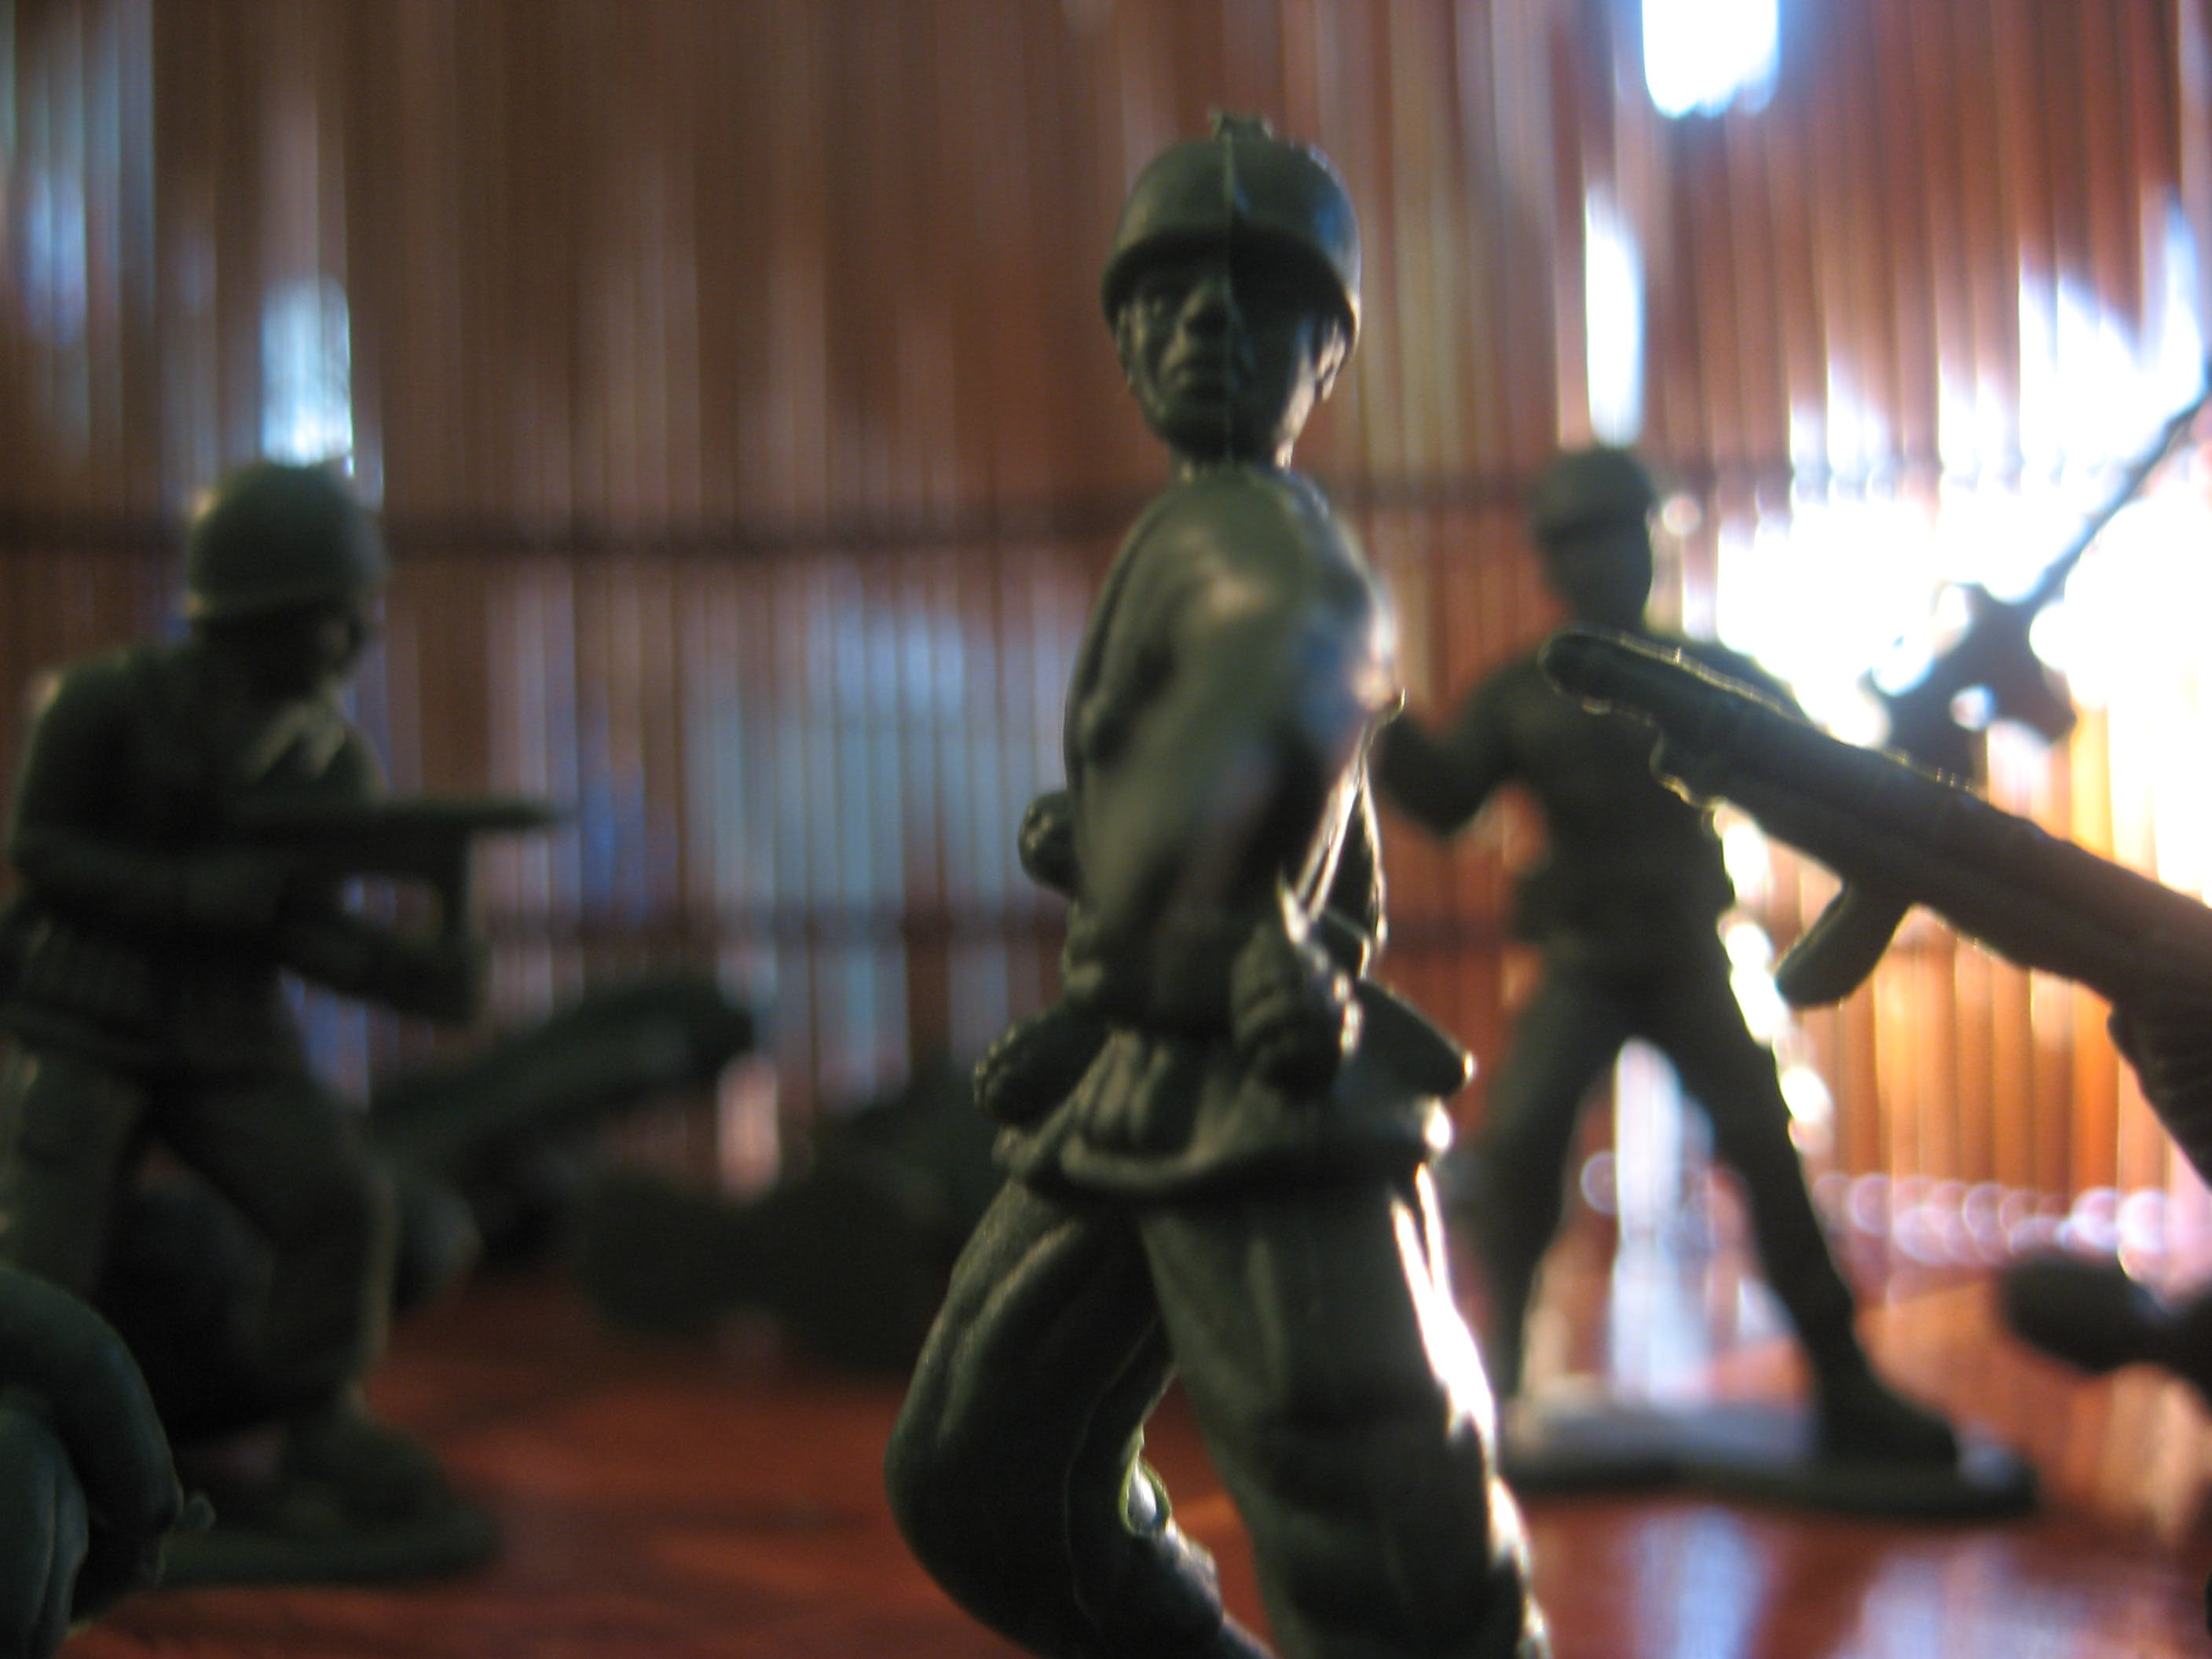 Free stock photo of army man, army men, army men toy, soldiers toy